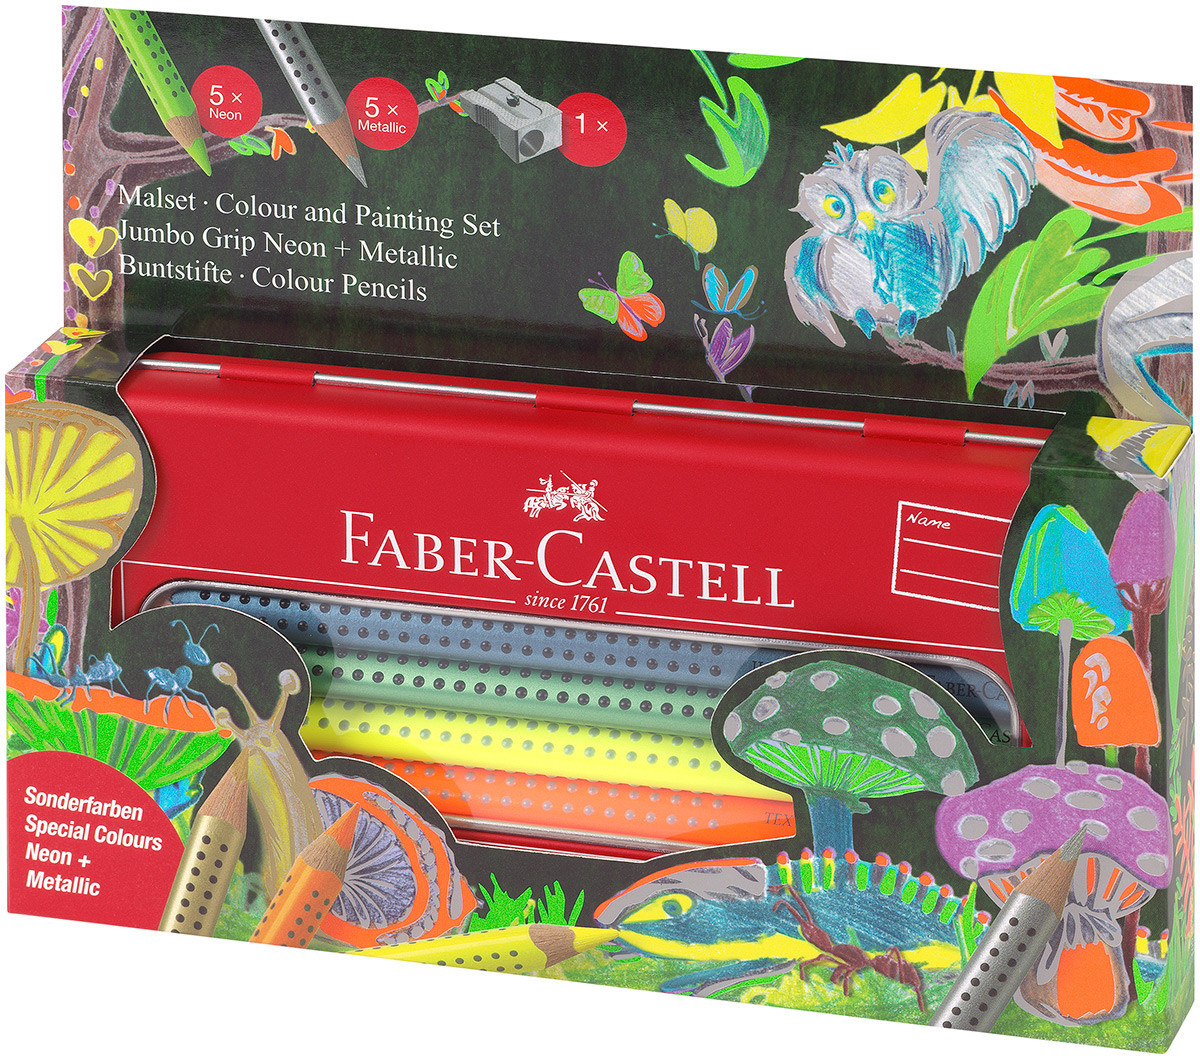 Faber-Castell Jumbo Grip Colouring Pencils - Assorted Neon & Metallic Colours (Tin of 10)